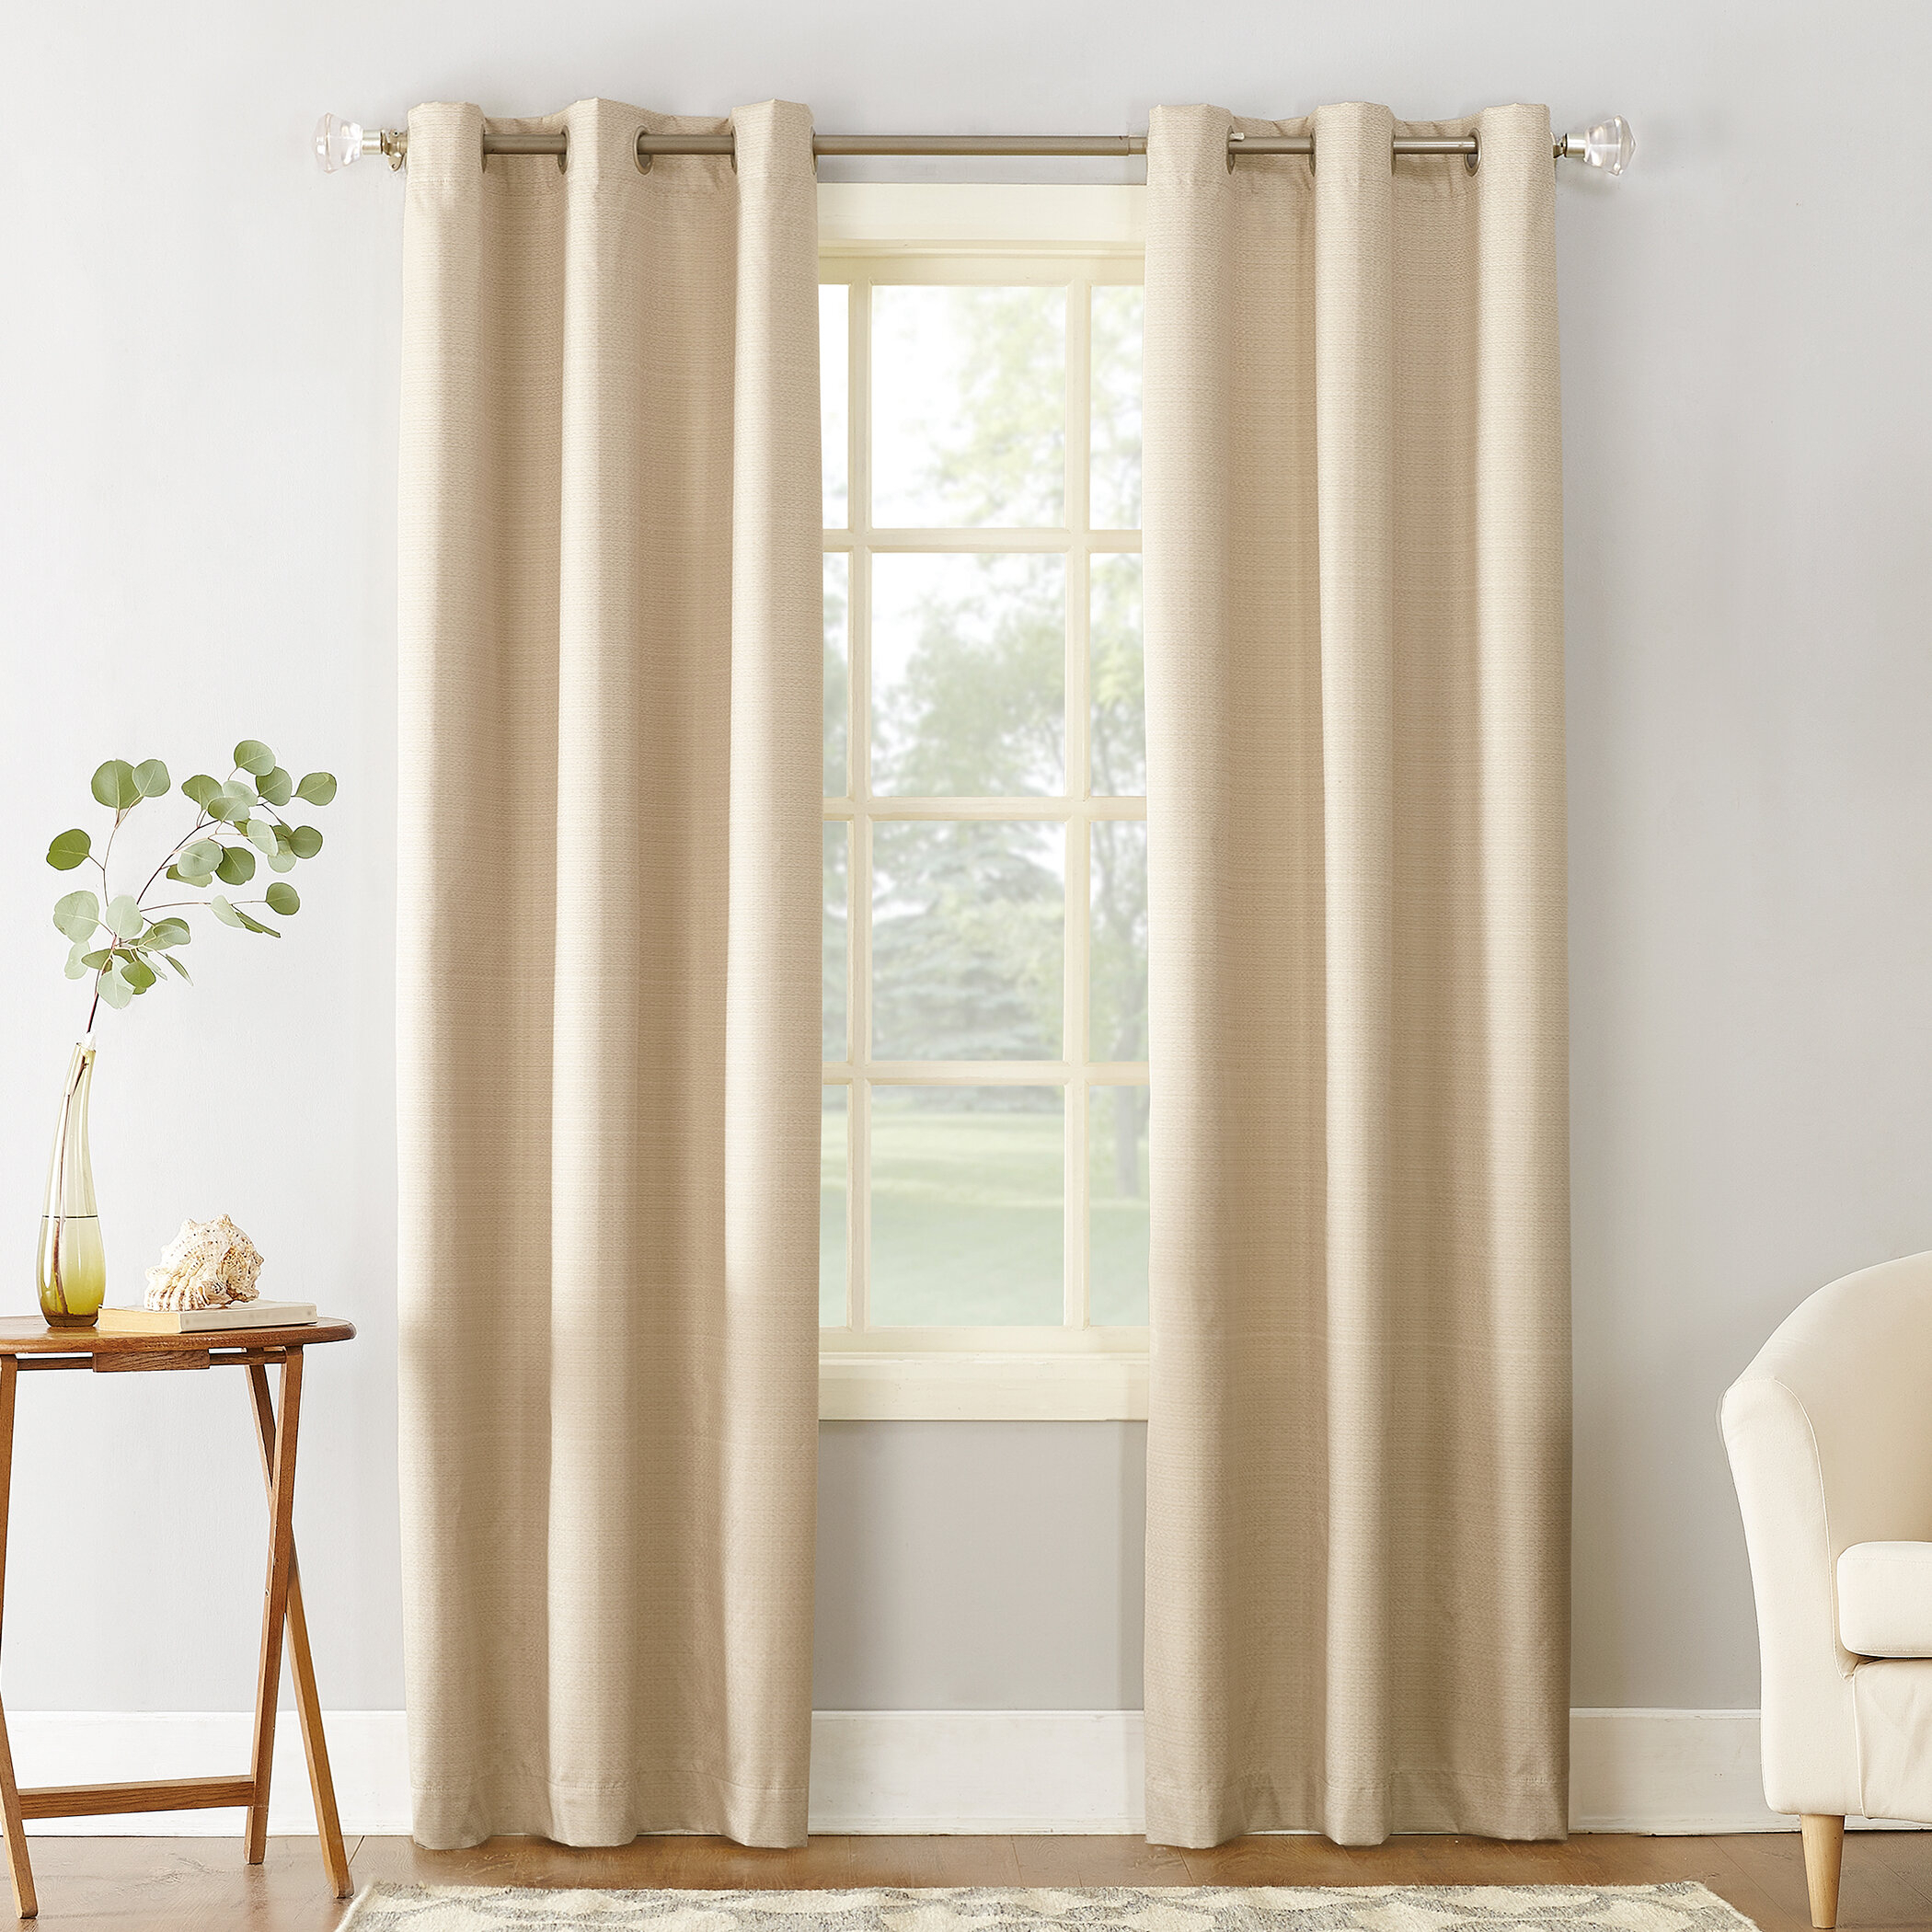 Cooper Textured Solid Room Darkening Thermal Insulated Grommet Single Curtain Panel Within Cooper Textured Thermal Insulated Grommet Curtain Panels (View 4 of 20)